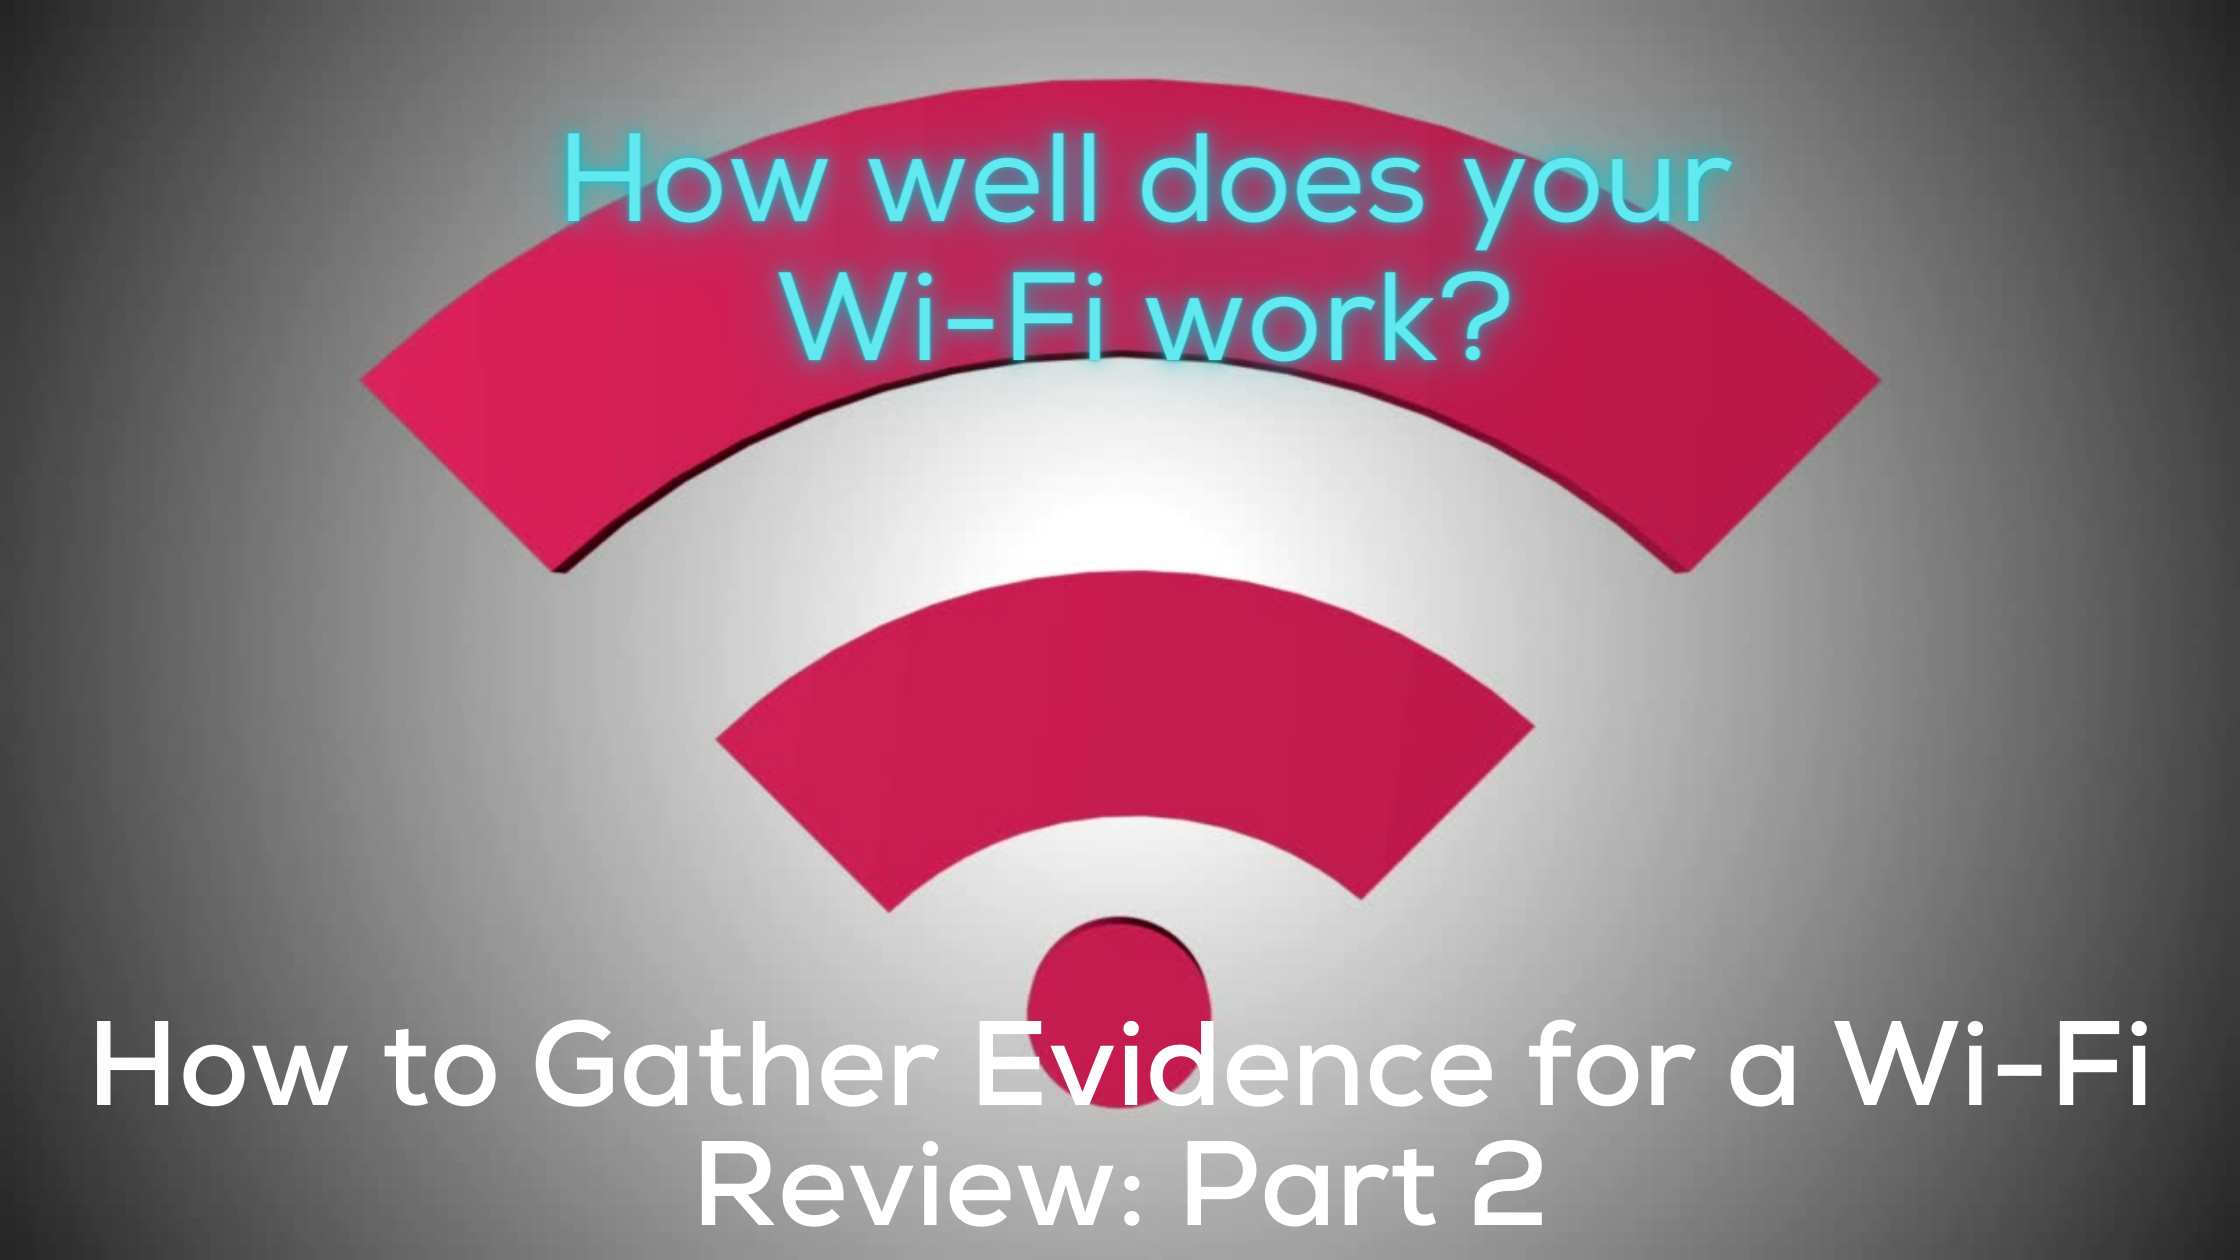 How to Gather Evidence for a Wi-Fi Review_ Part 2